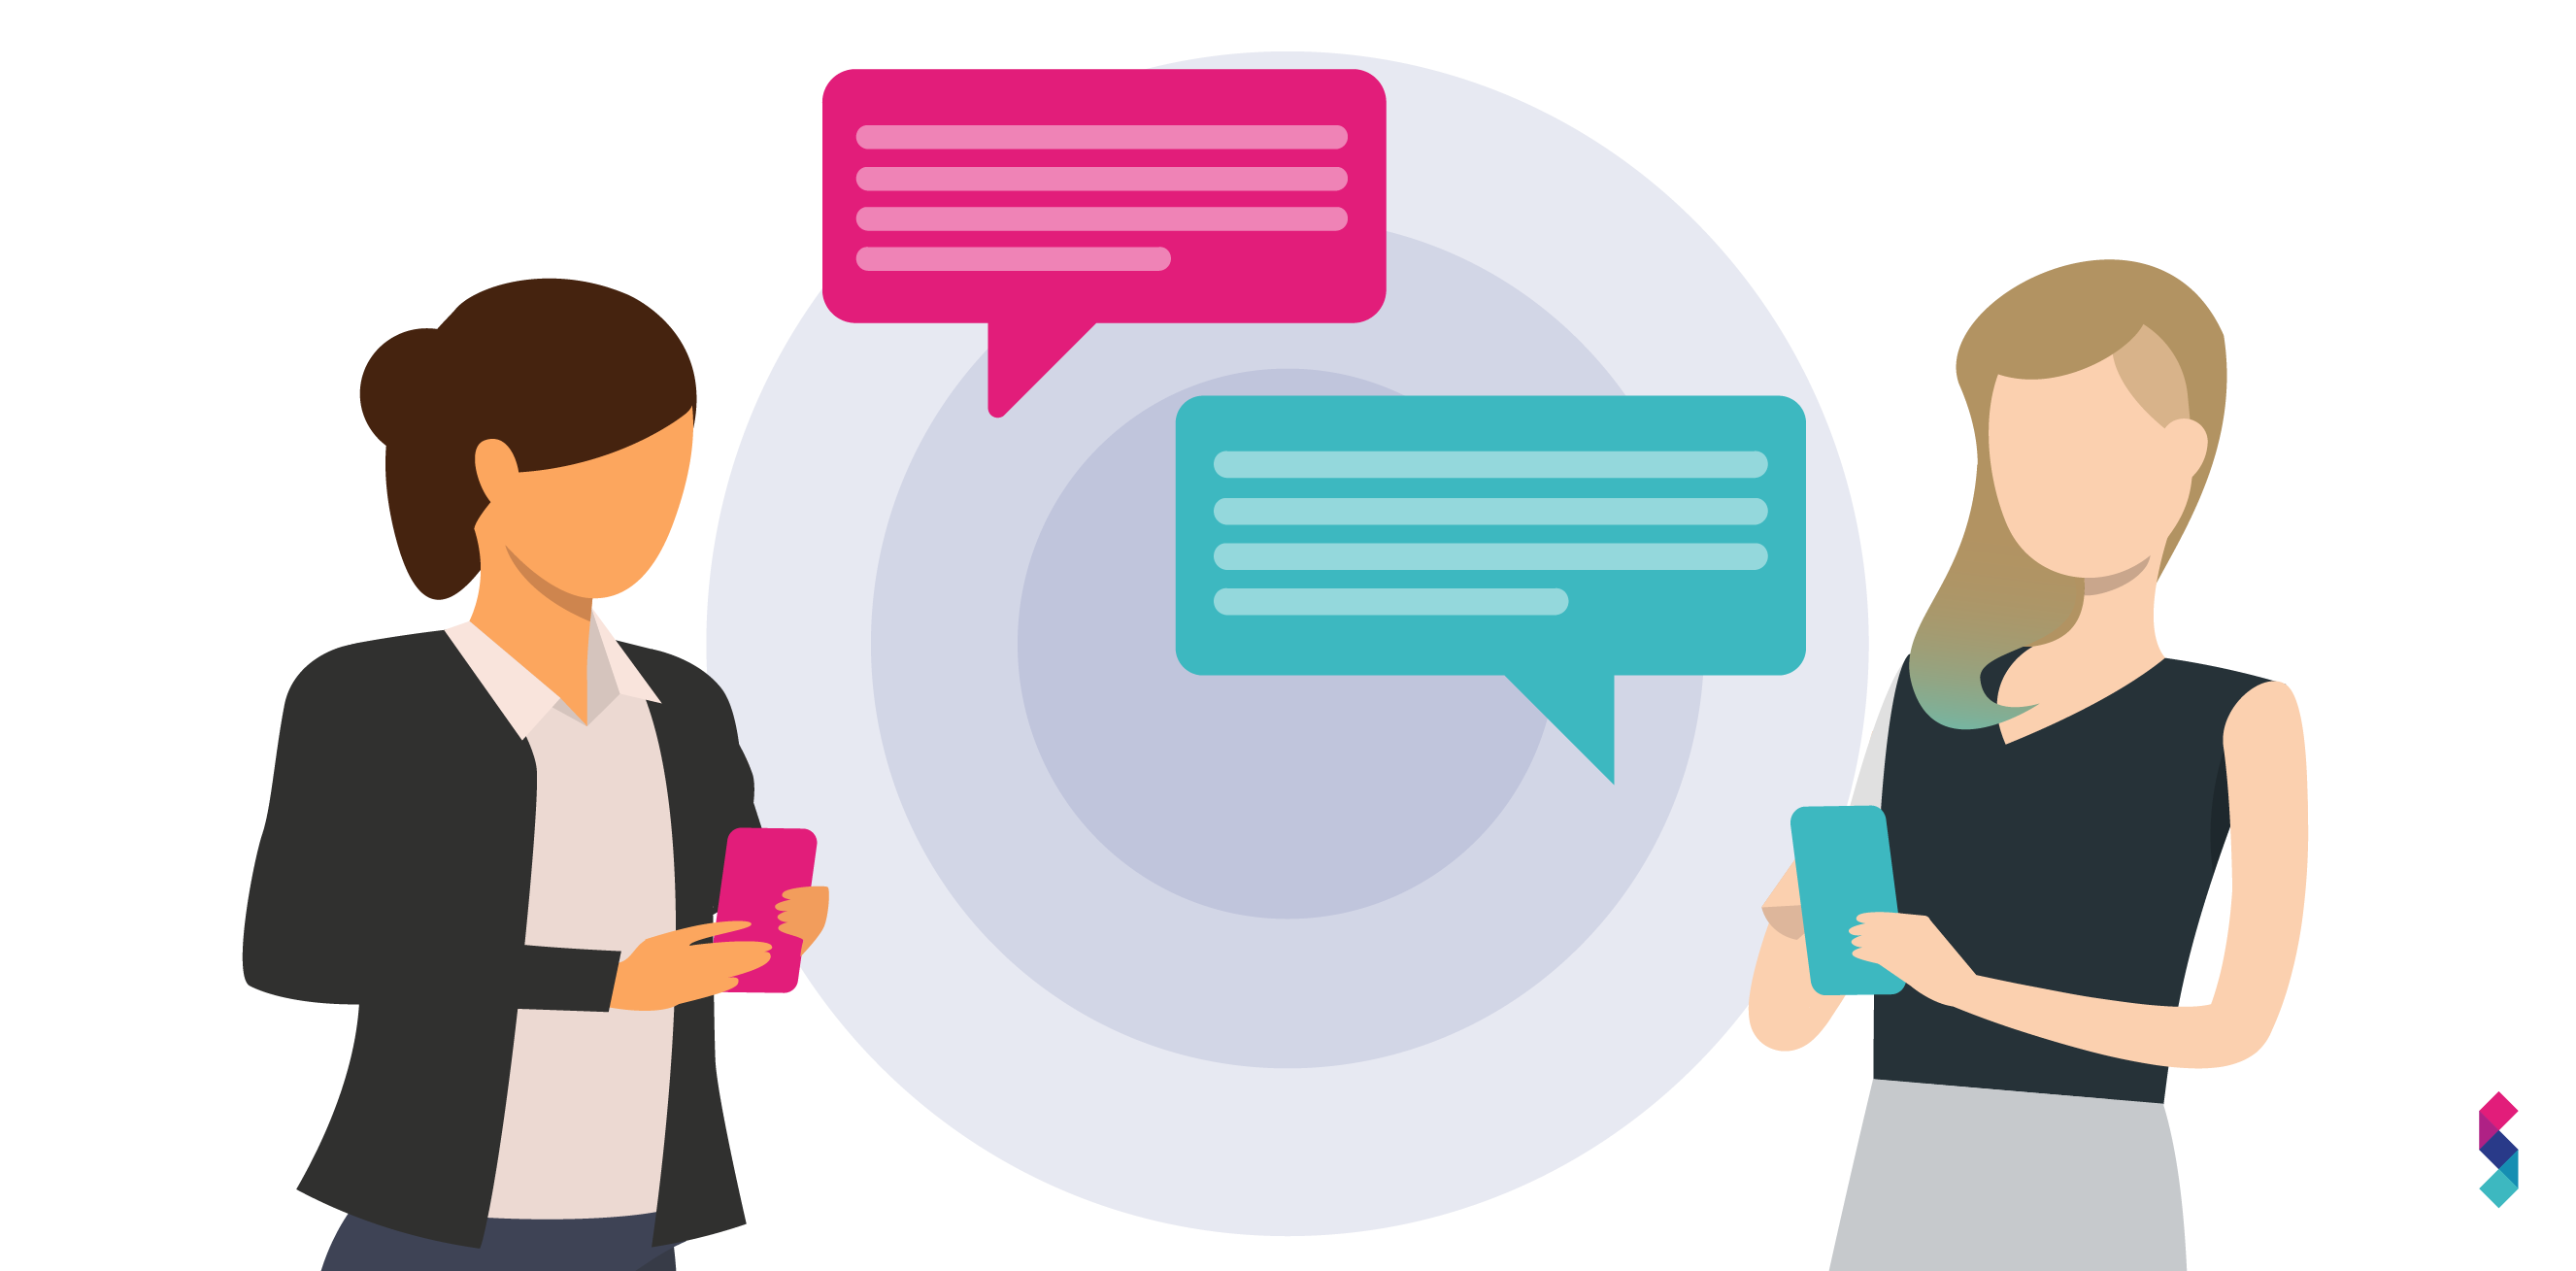 The best use of text marketing is to keep it conversational